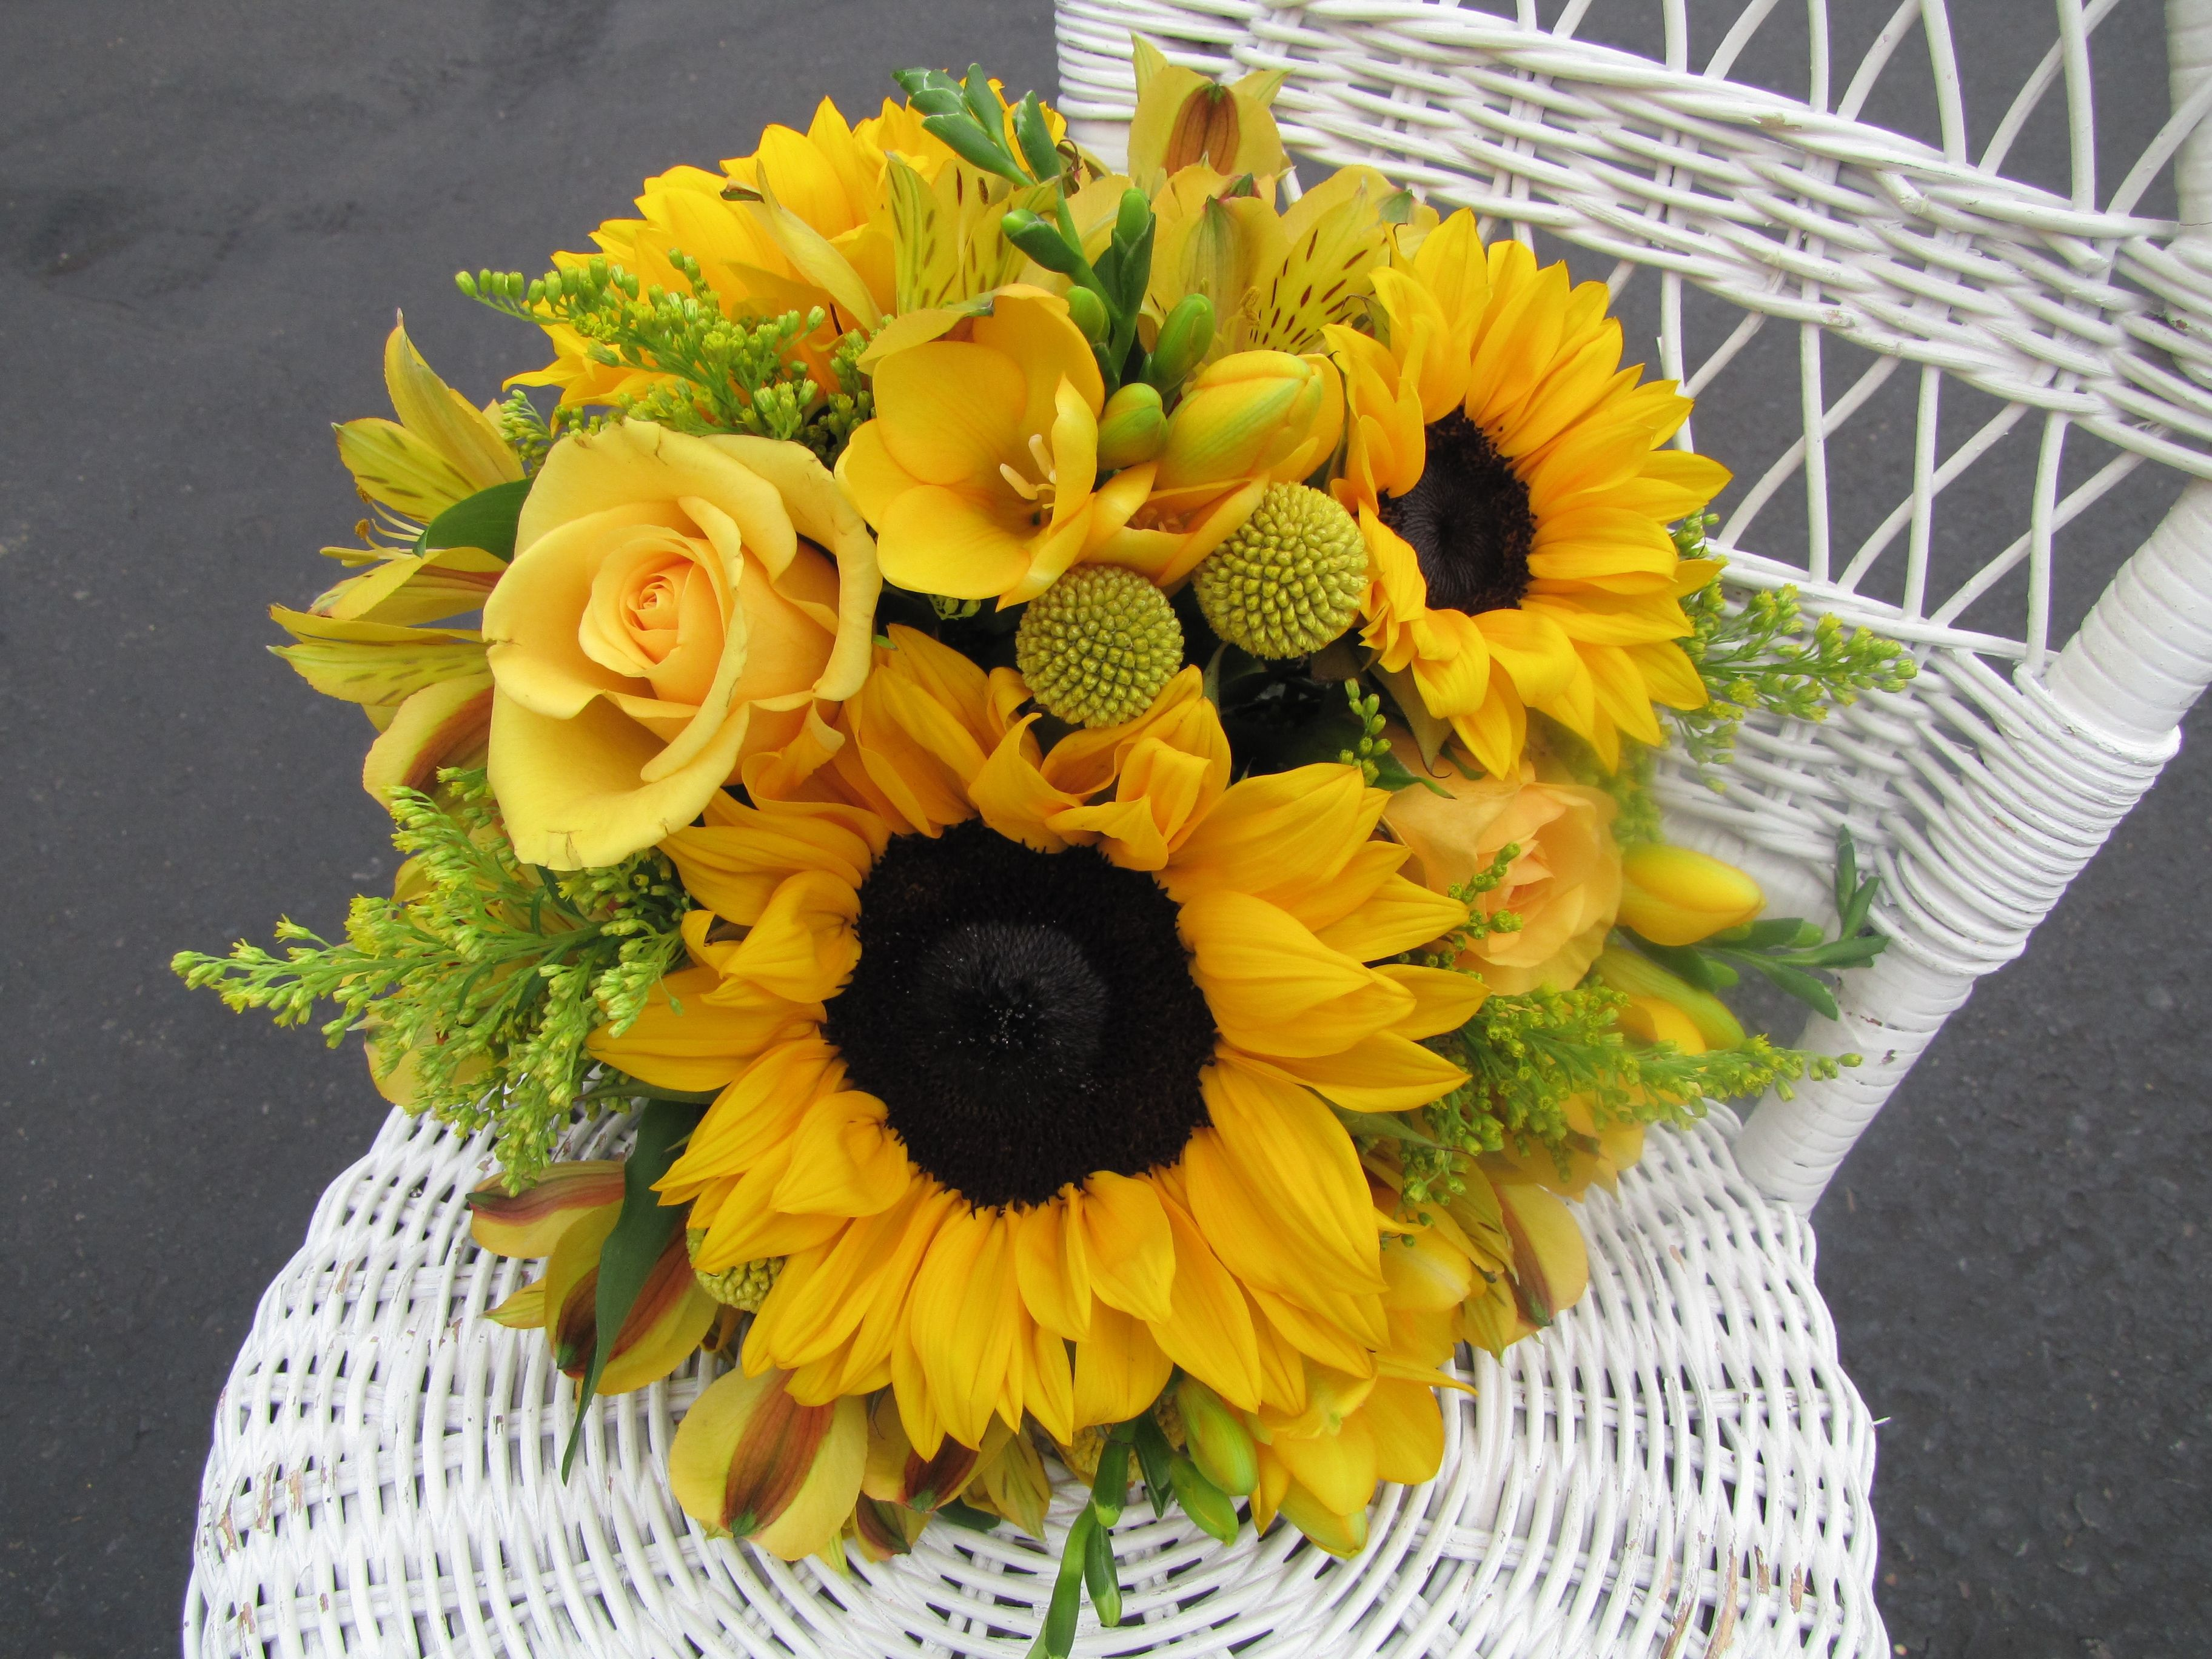 Solid yellow flower bouquets sunflowers freesia roses billy solid yellow flower bouquets sunflowers freesia roses billy balls alstromeria and dhlflorist Gallery